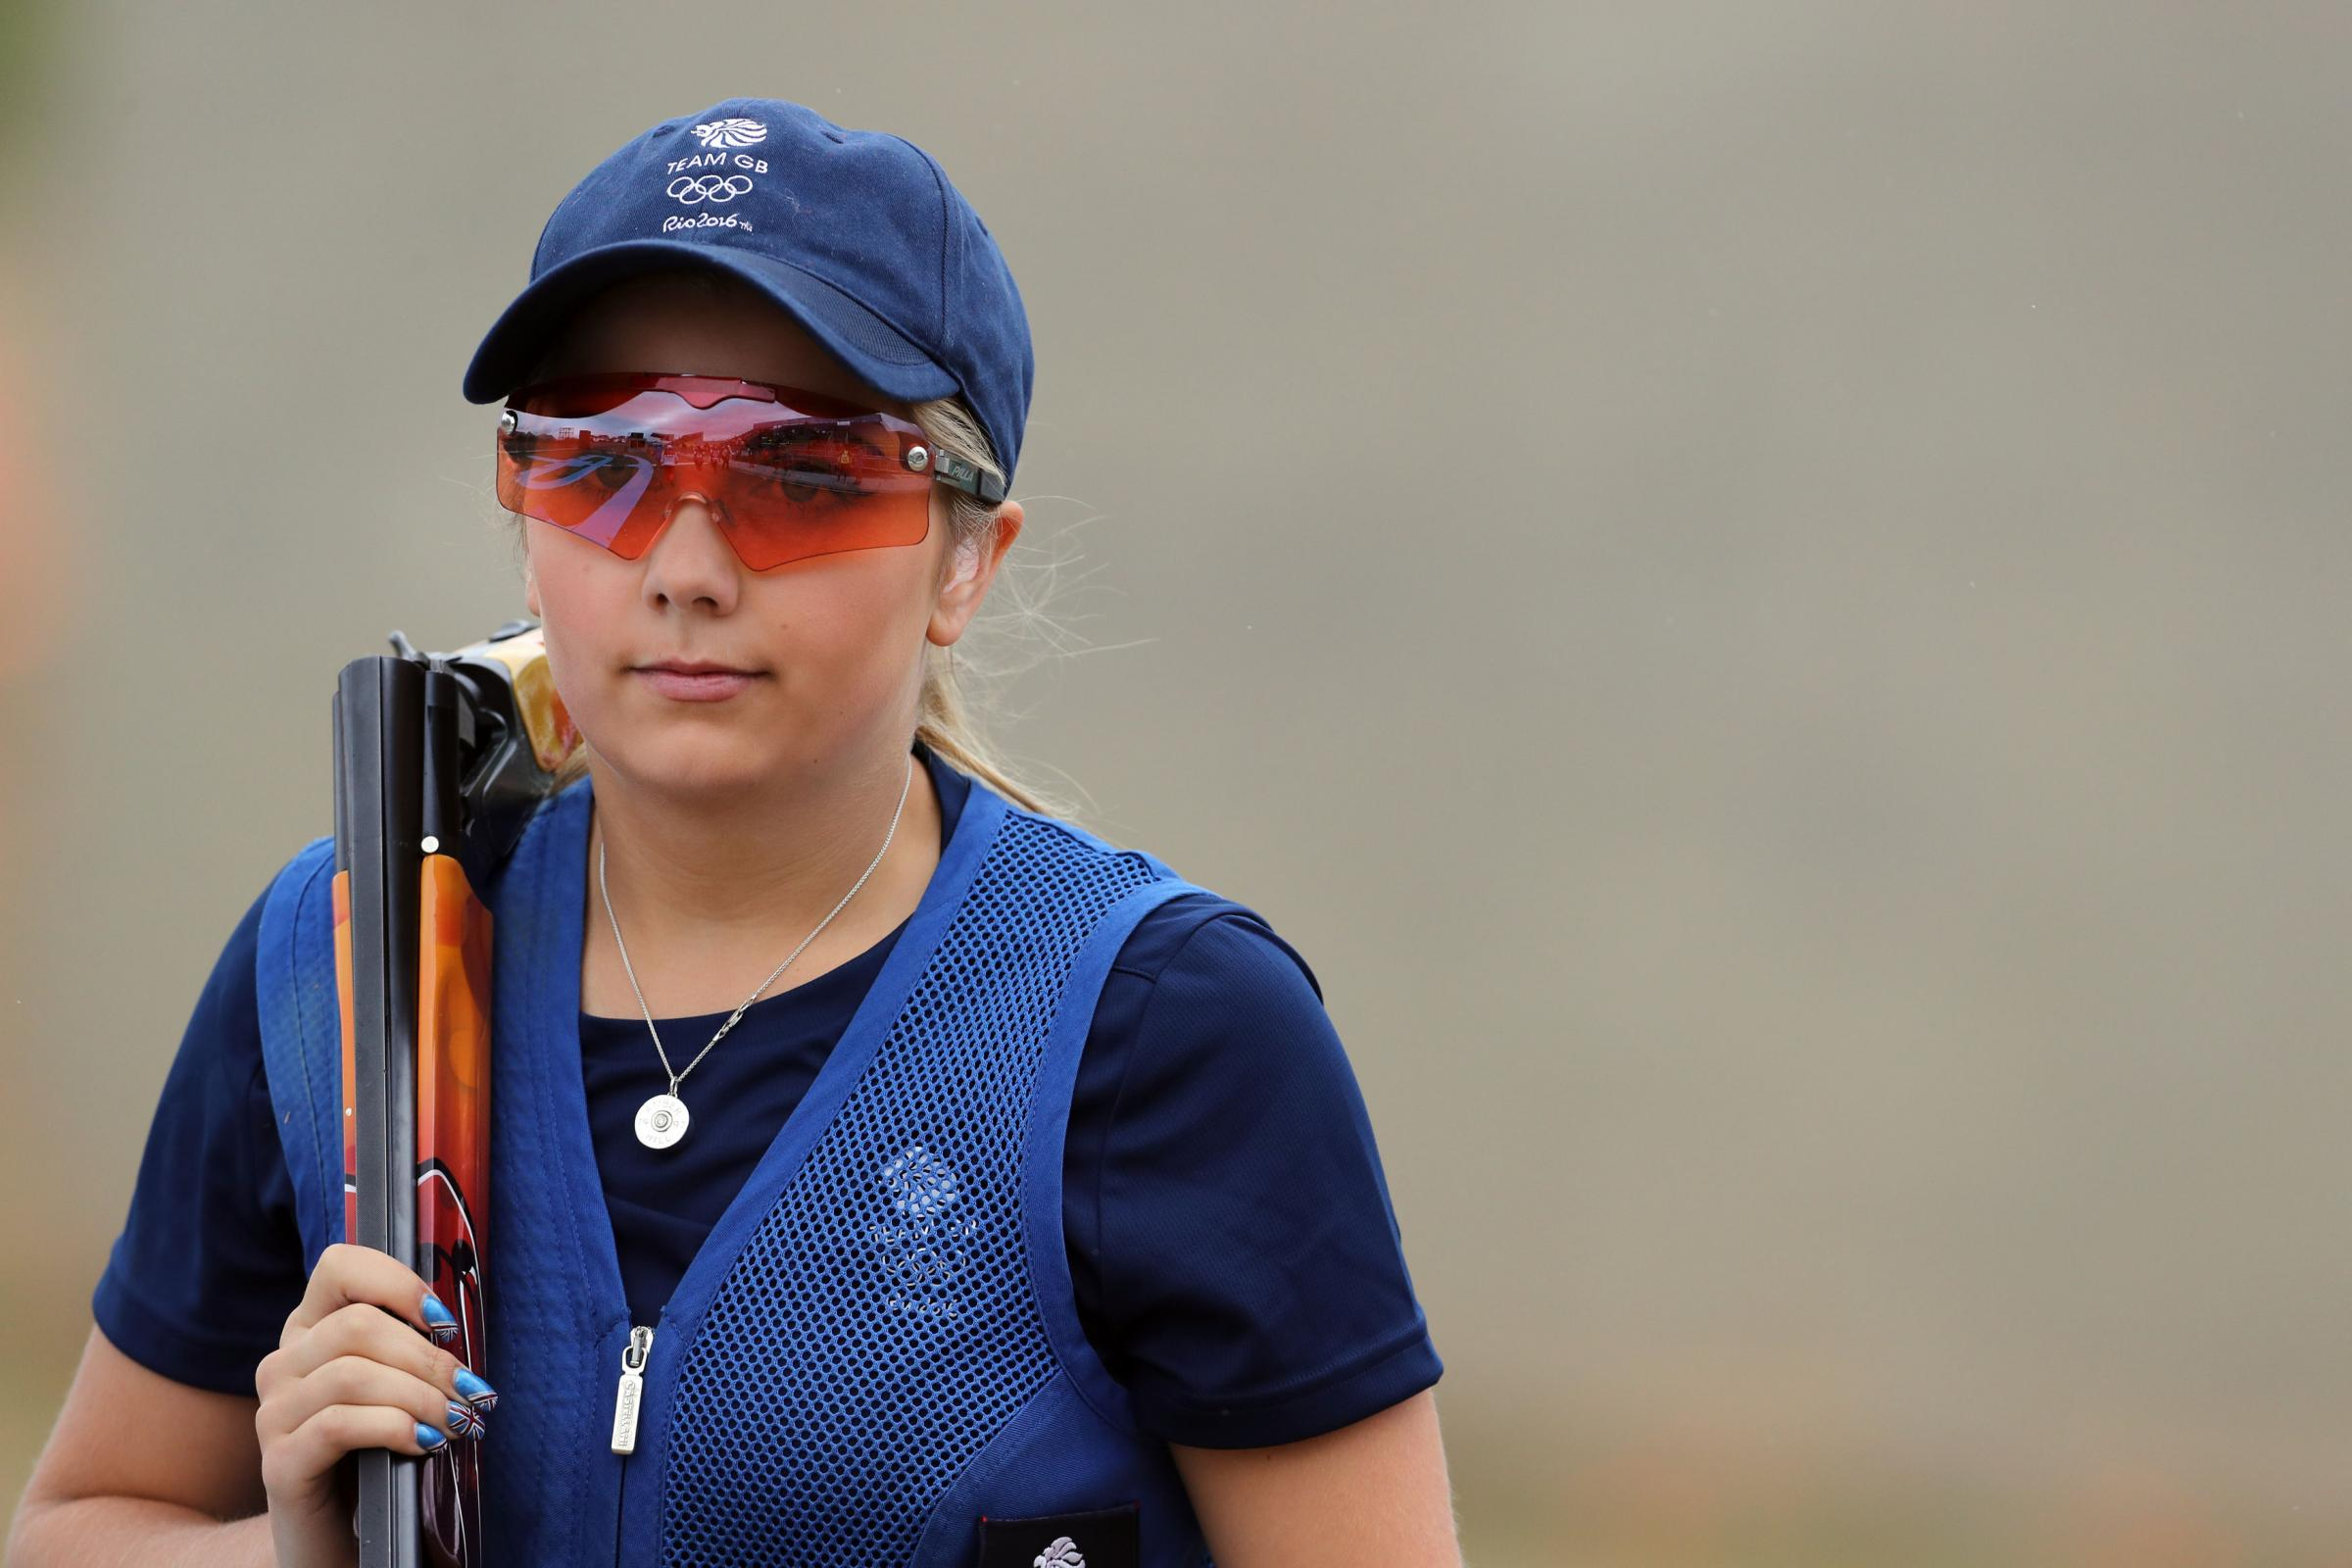 Binfield skeet shooter, Amber Hill. Picture: Owen Humphreys/PA Wire.